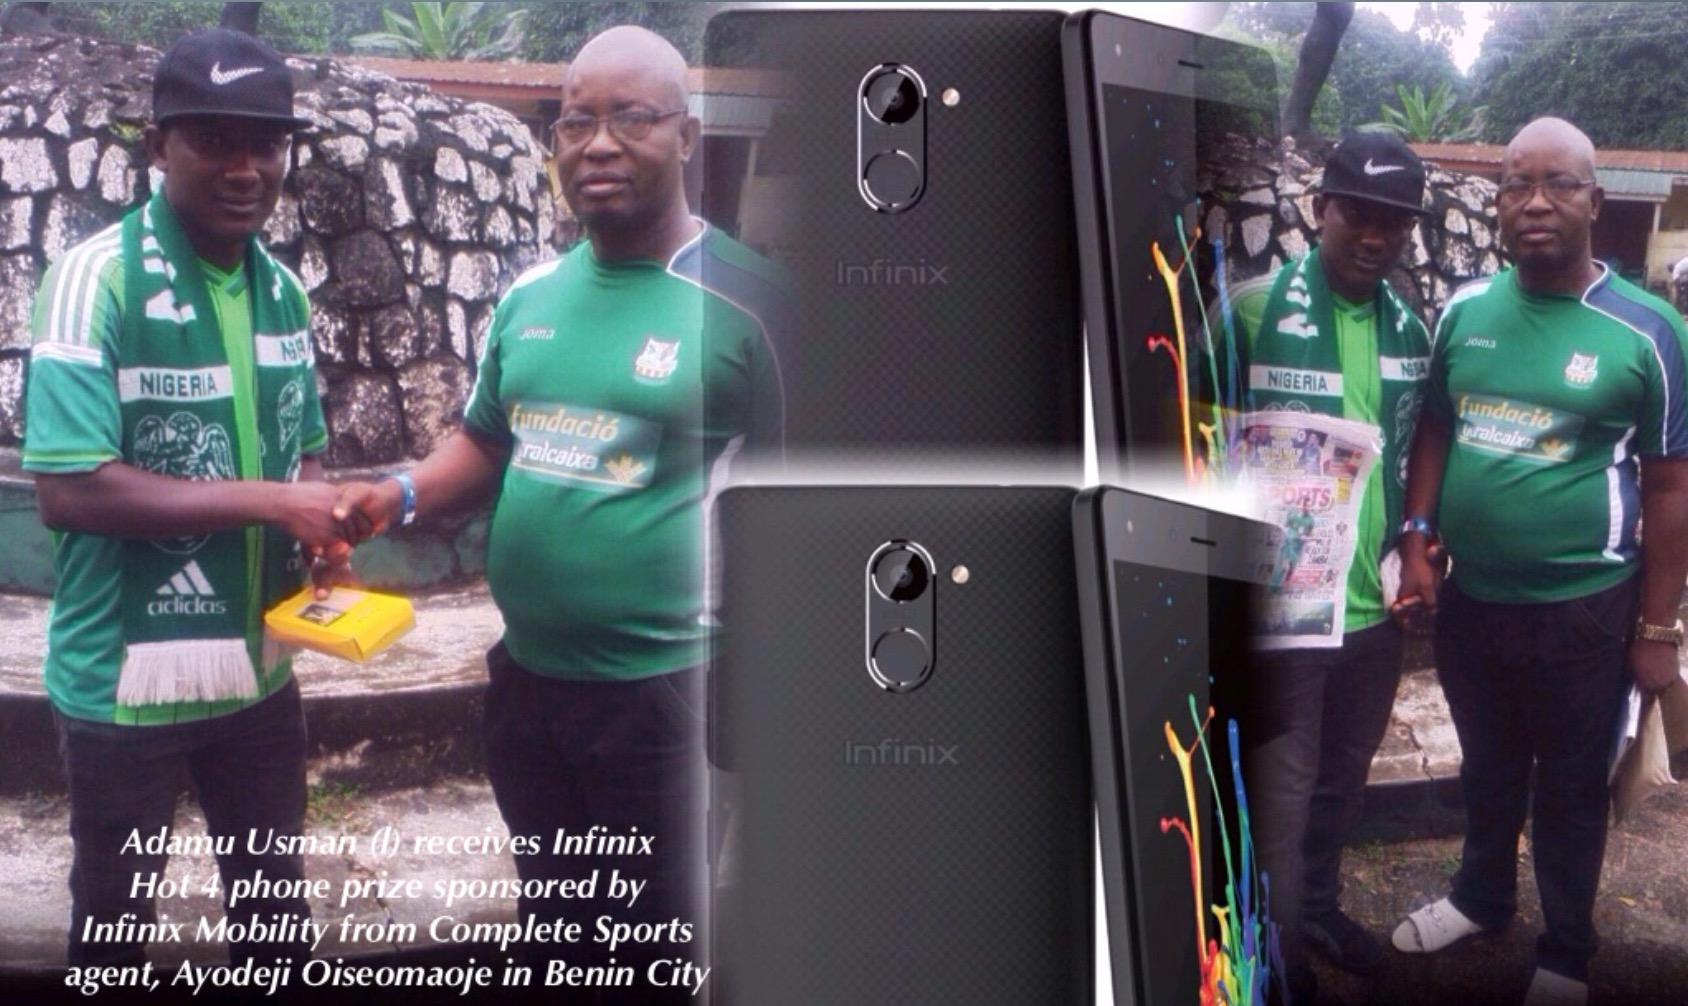 Infinix Hot Match: Auchi-Based Winner Receives Infinix Hot 4 Prize